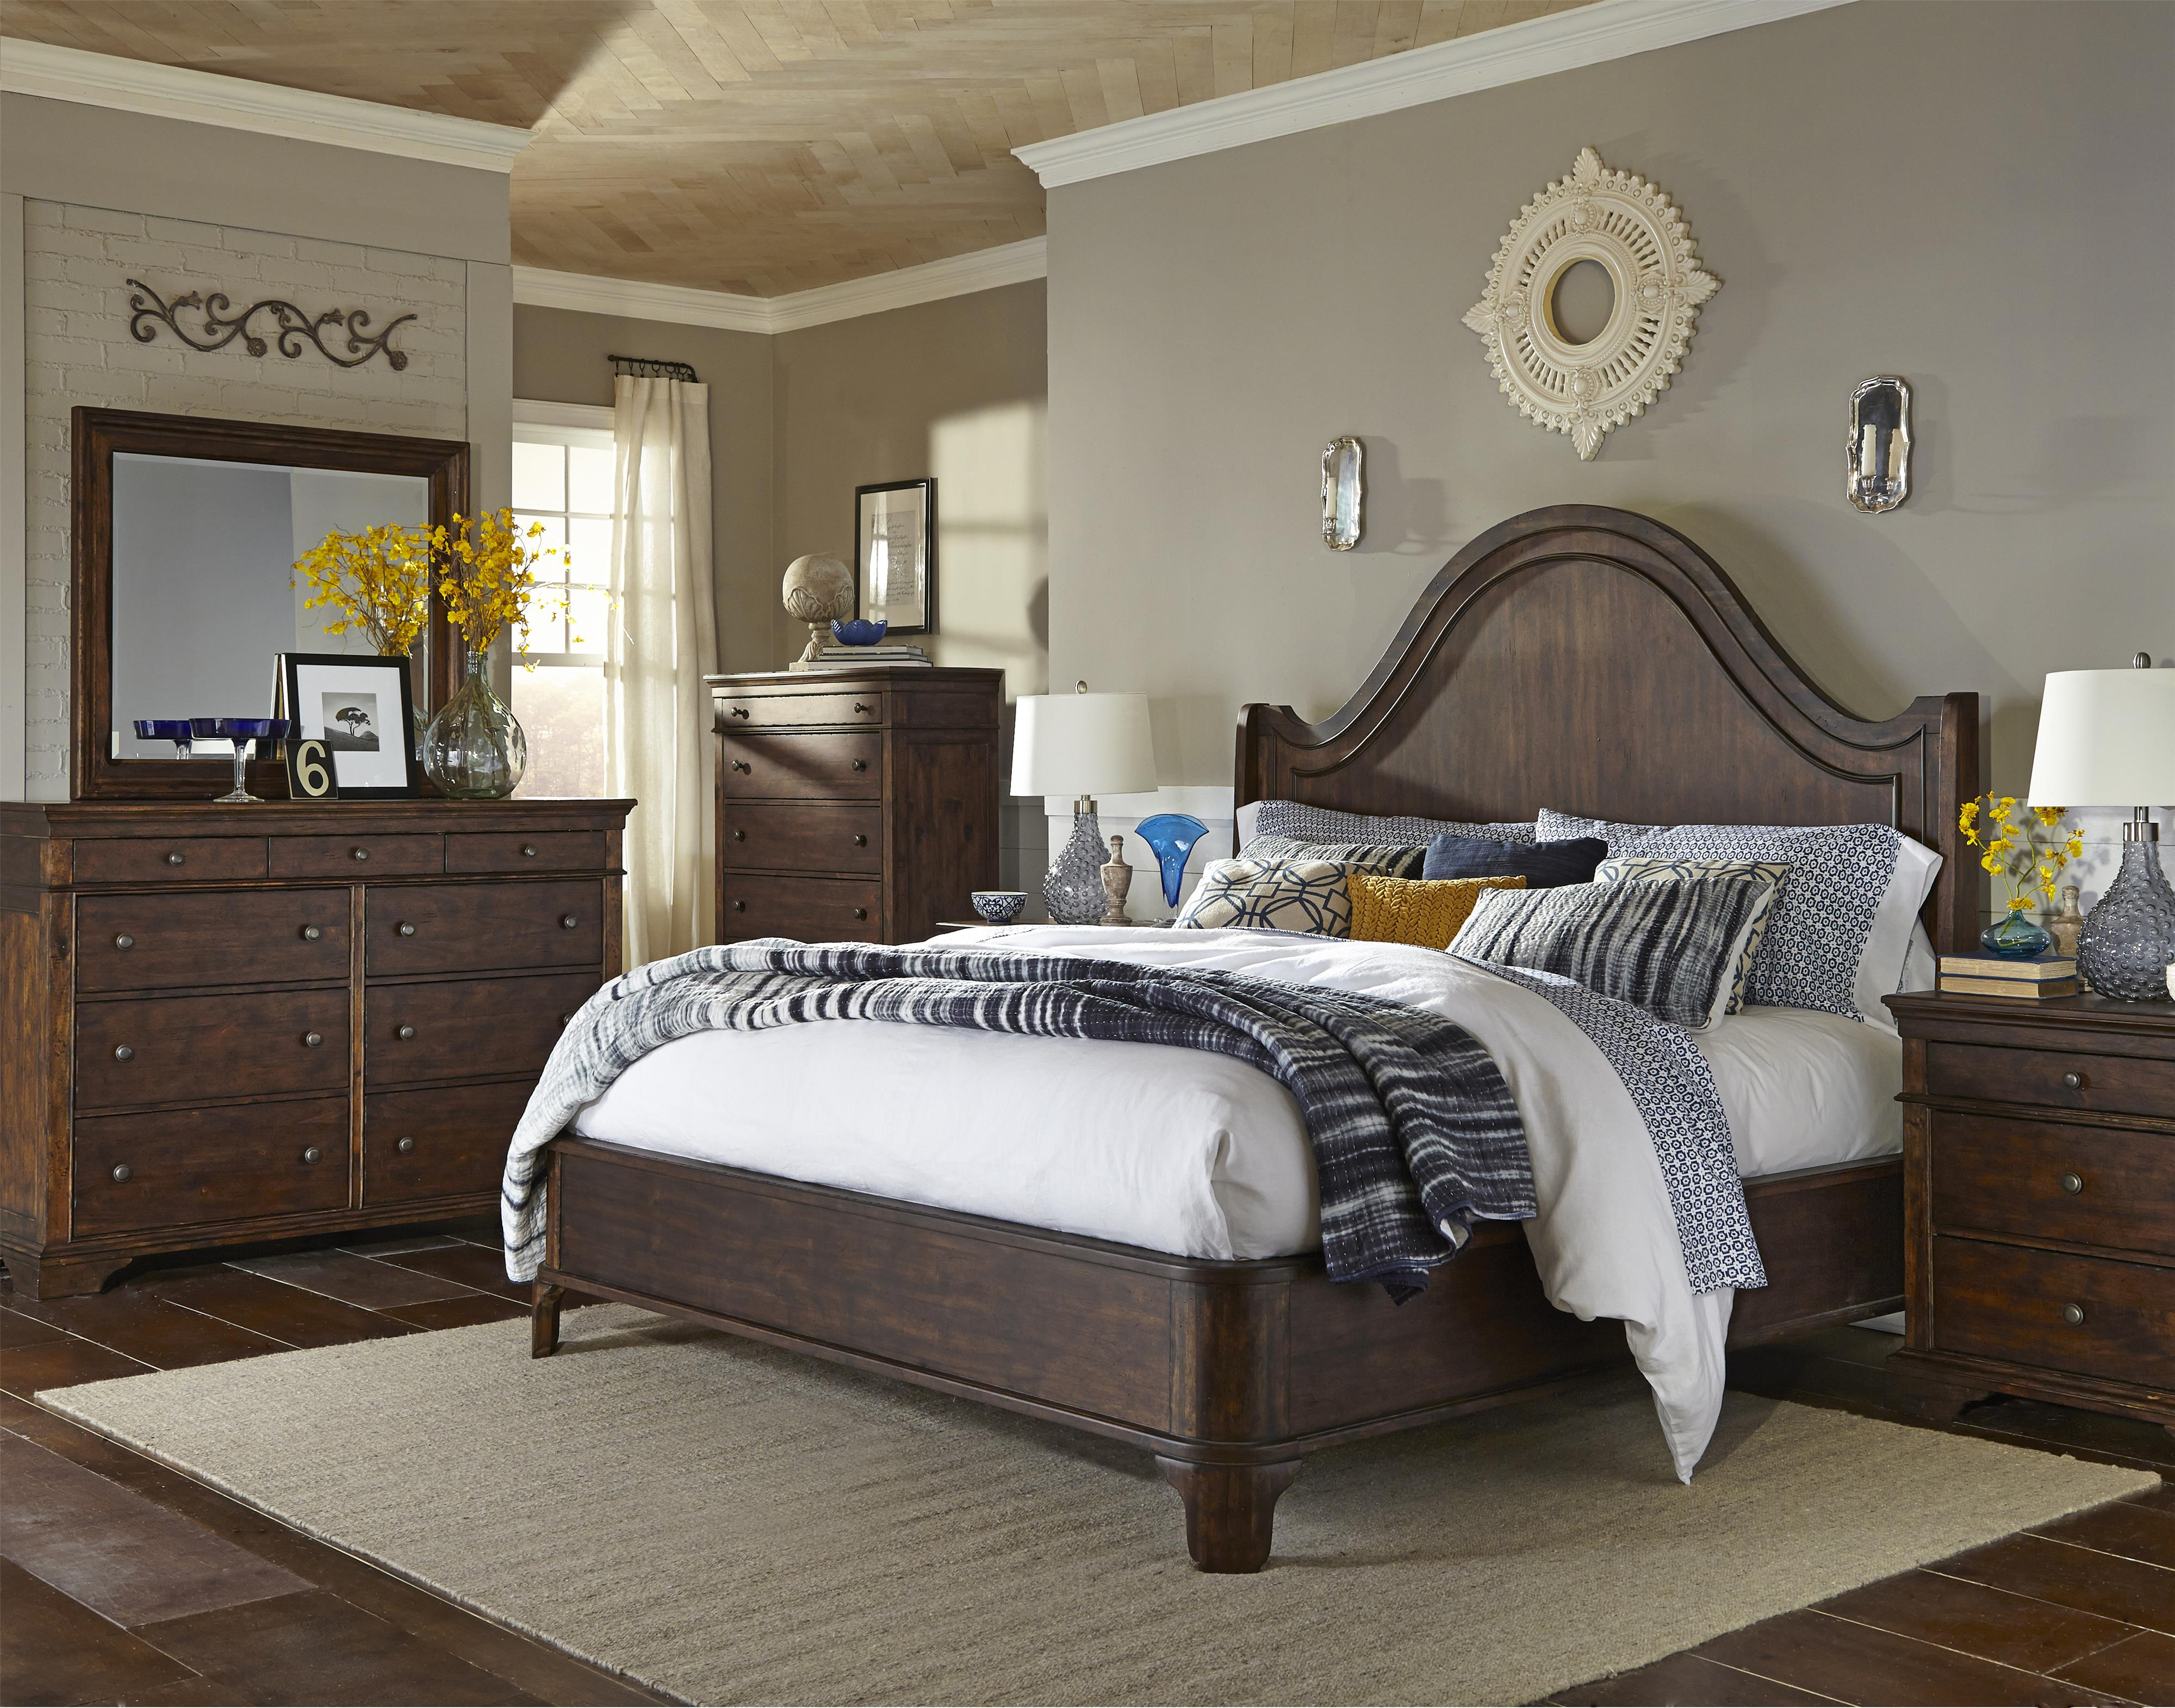 Trisha yearwood home collection by klaussner trisha for Bedroom furniture 30144